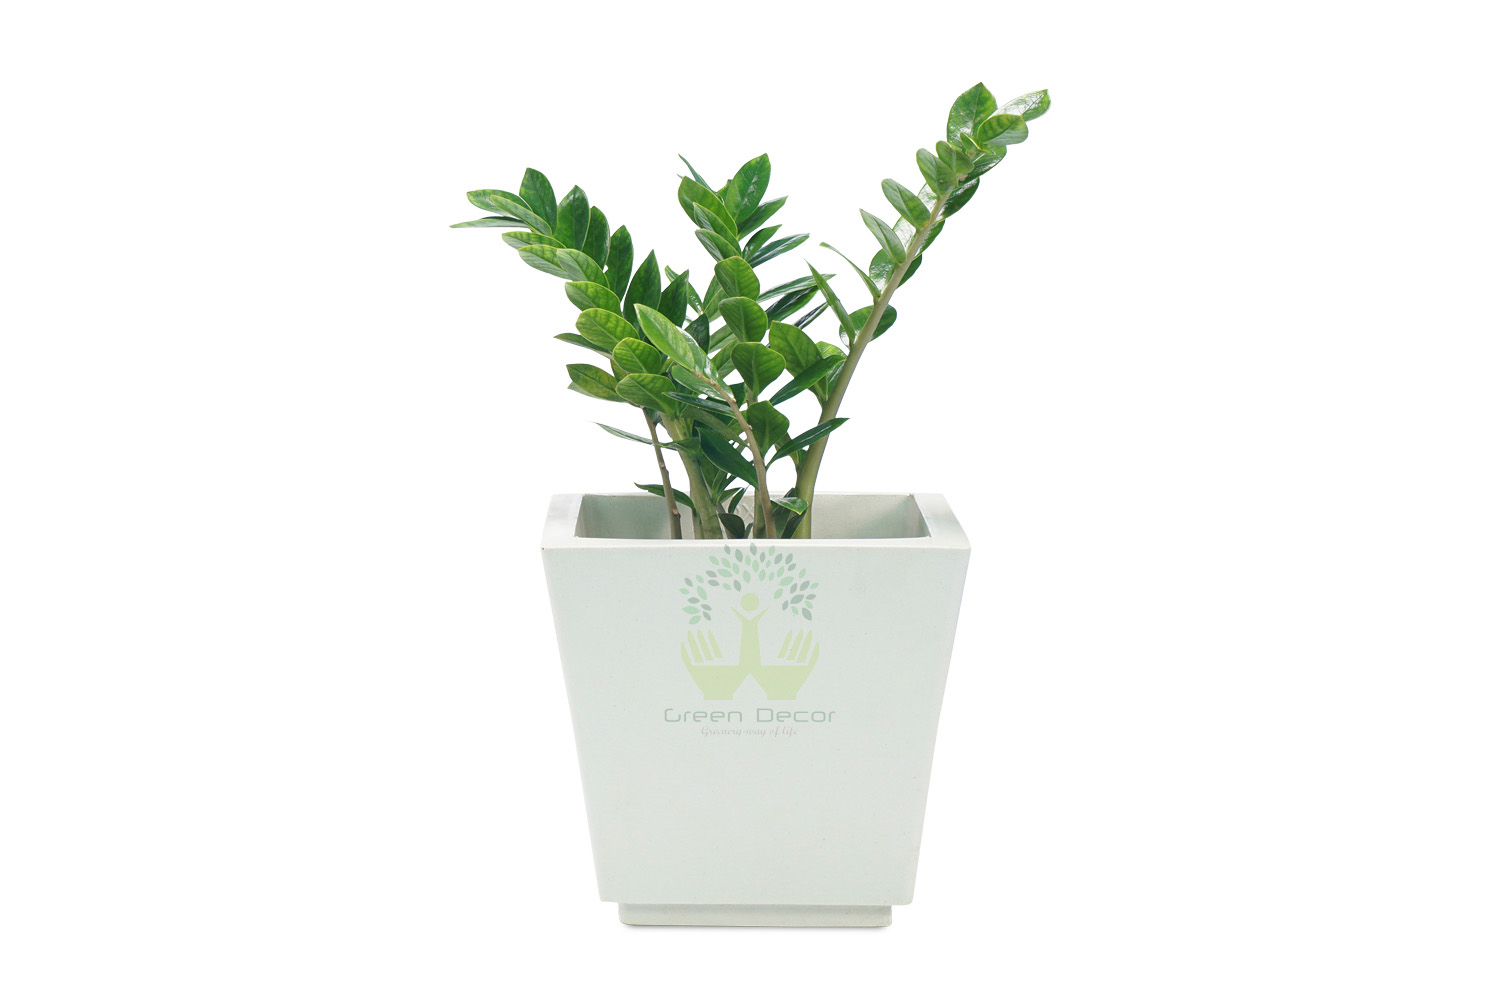 Buy Zed Online Order For Zed Plants In Delhi Green Decor